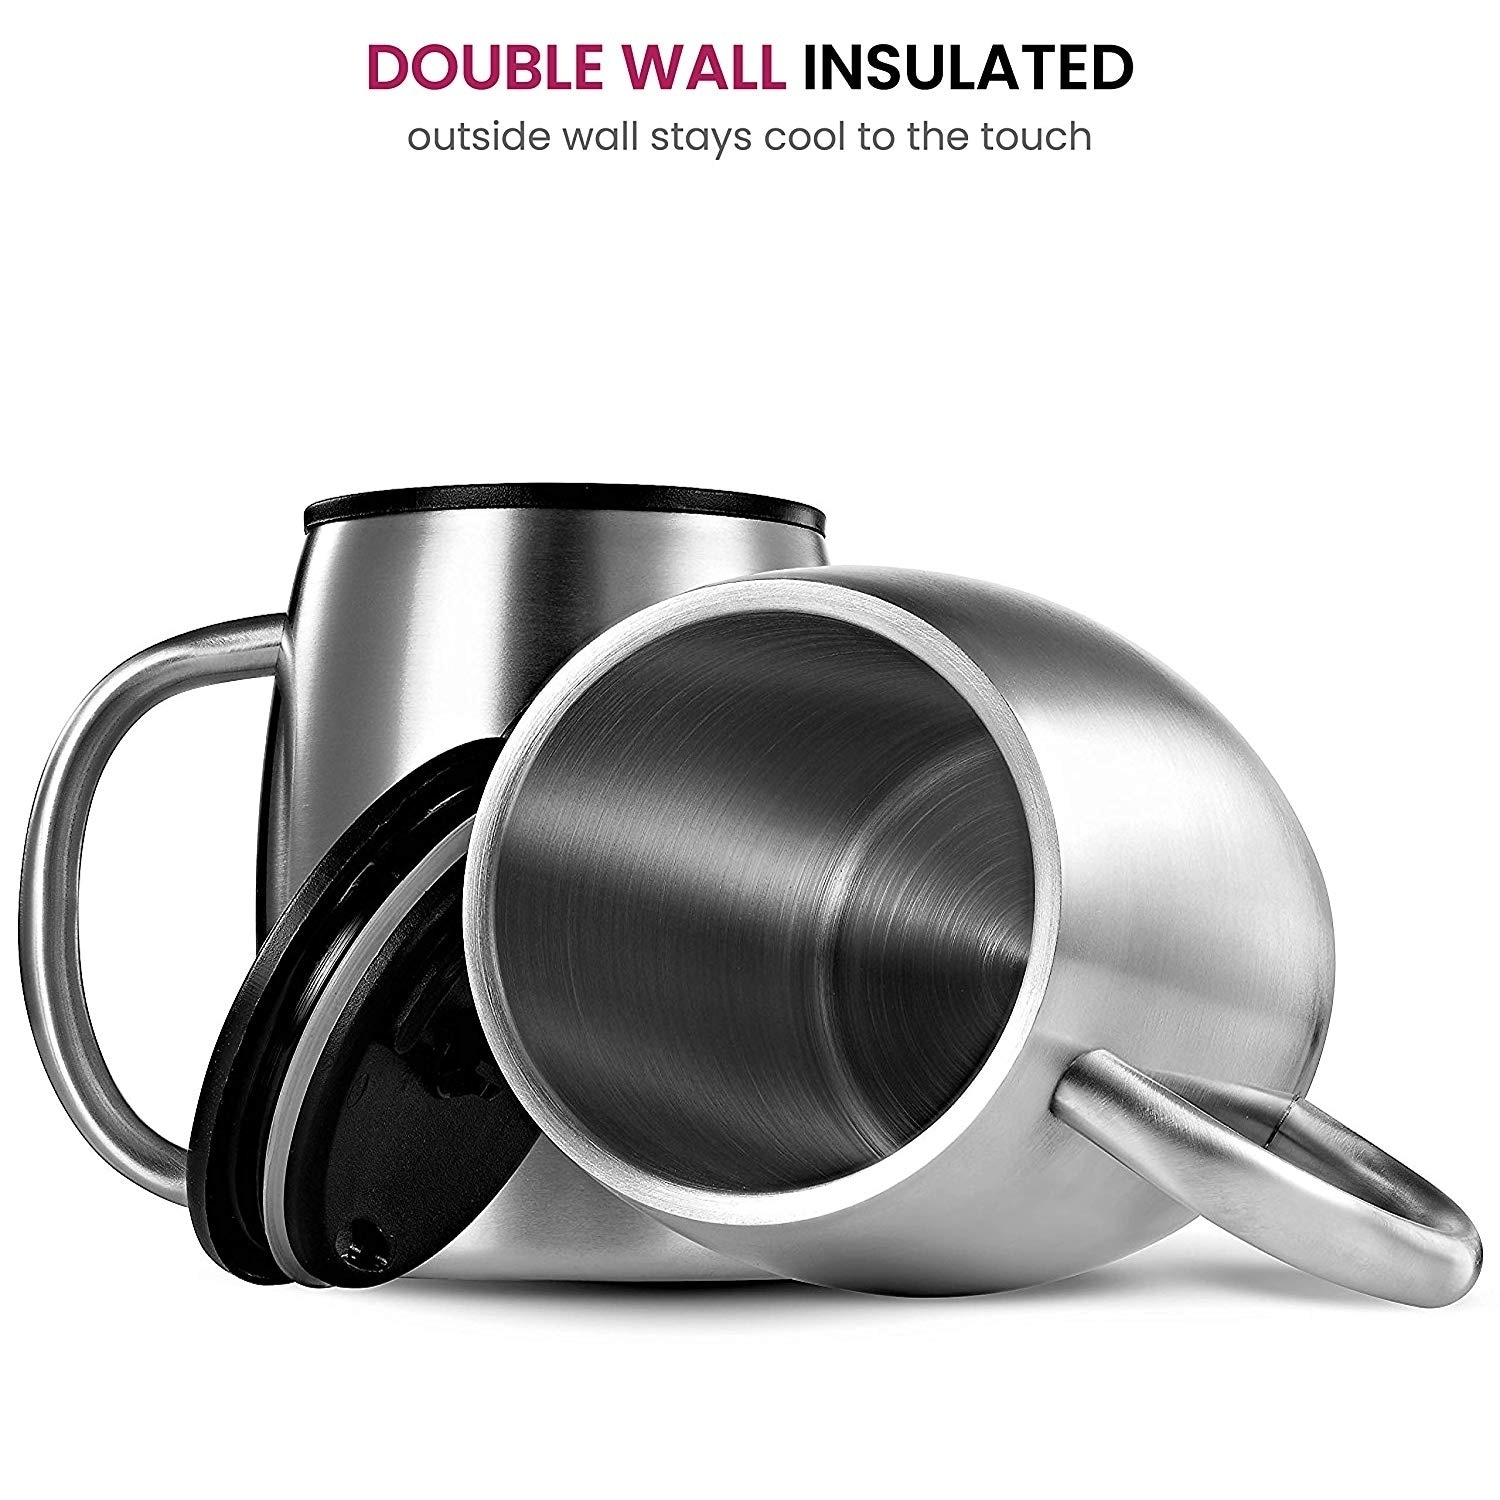 508d461d986 Shop Double Wall Stainless Steel Coffee Mugs with Lids And Handle -Set of 2  - Free Shipping On Orders Over  45 - Overstock - 20464958